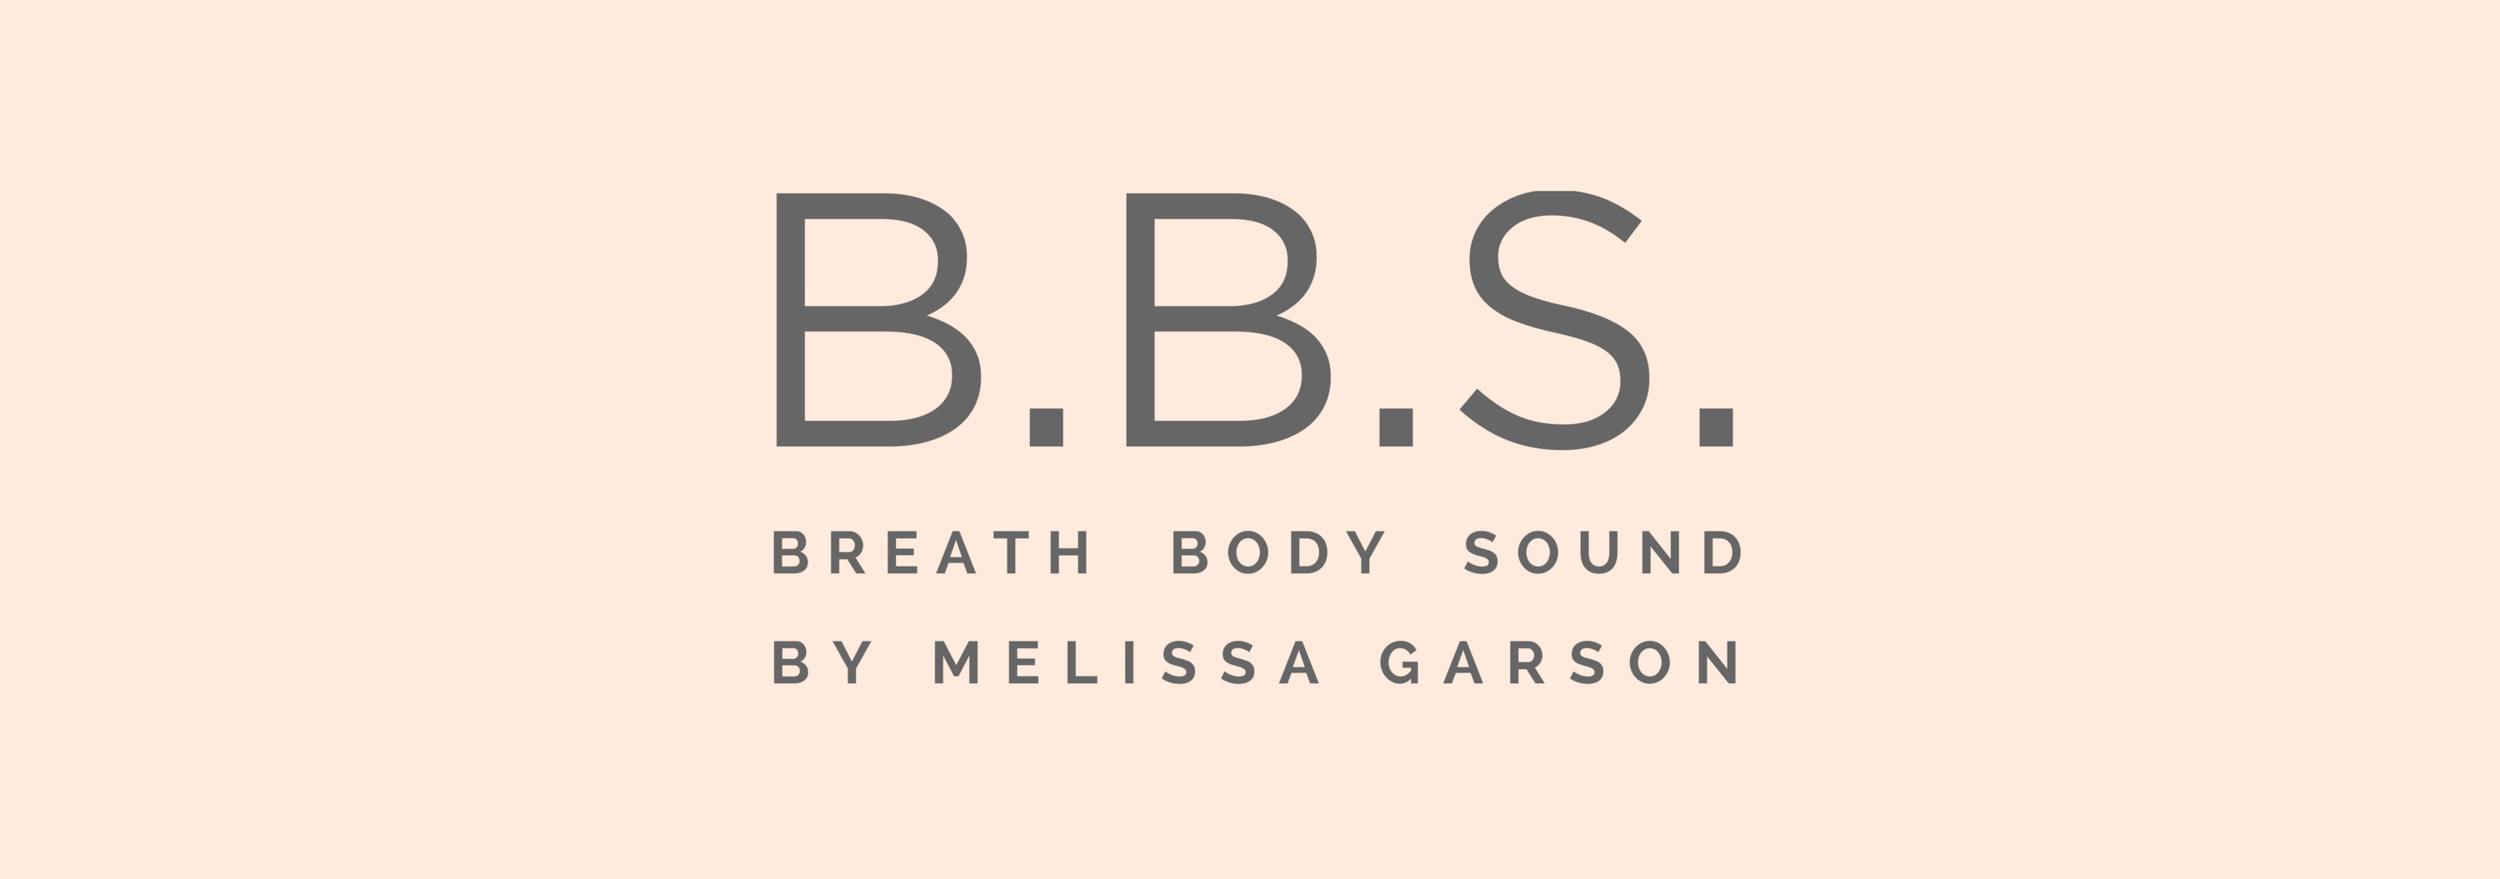 BBS Breath Body Sound by Melissa Garson.png